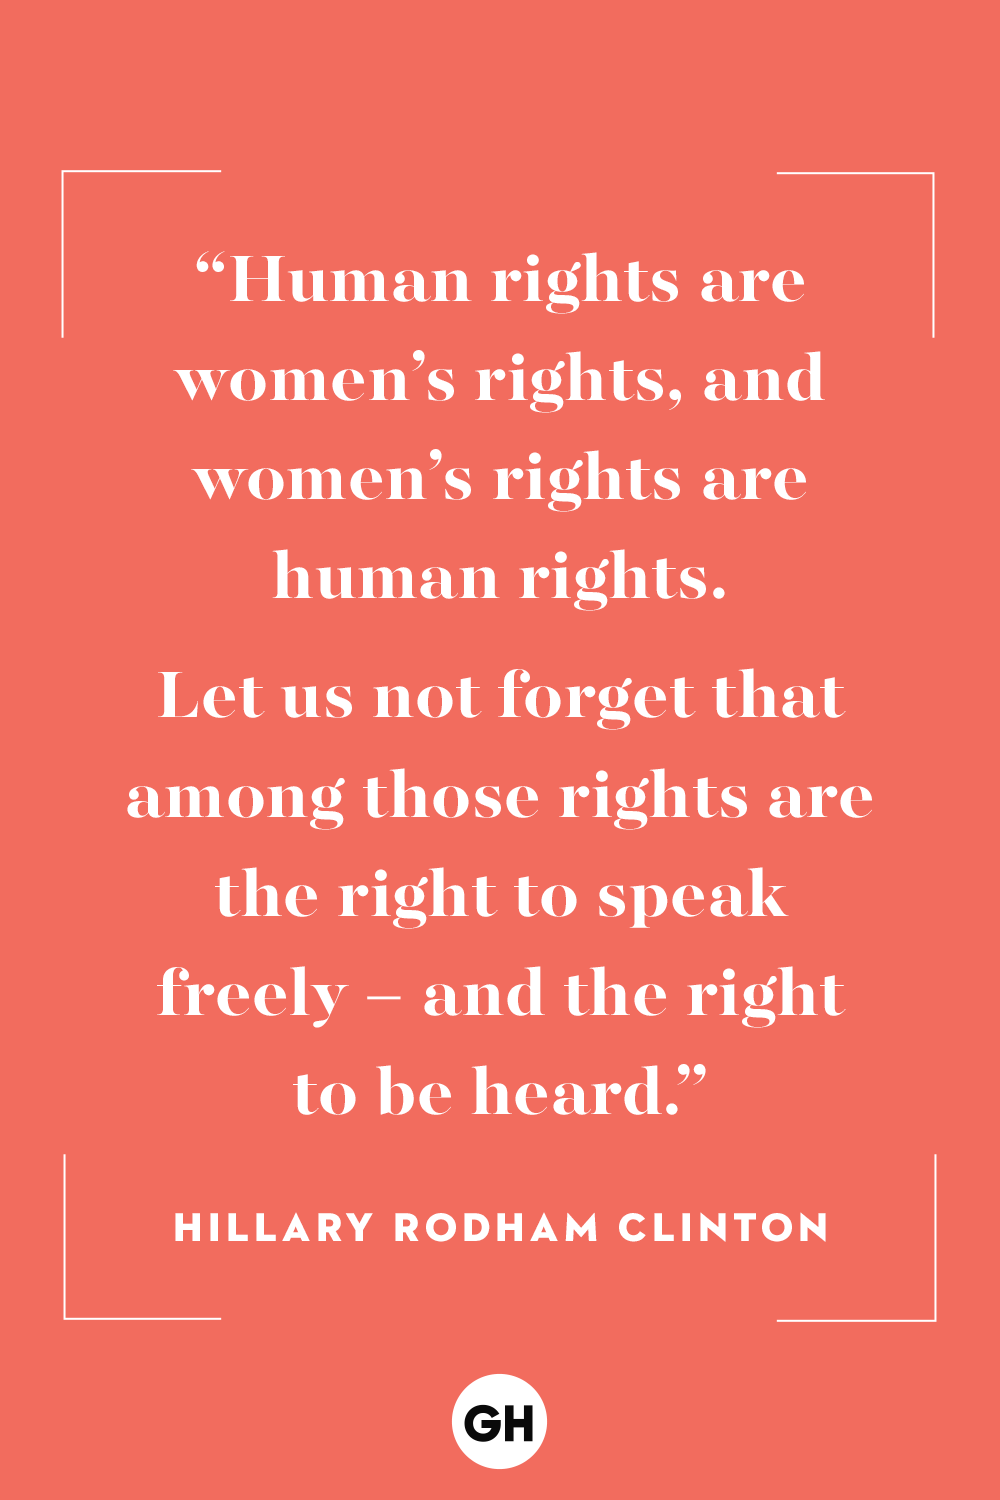 21 Best Inspirational Feminist Quotes Of All Time